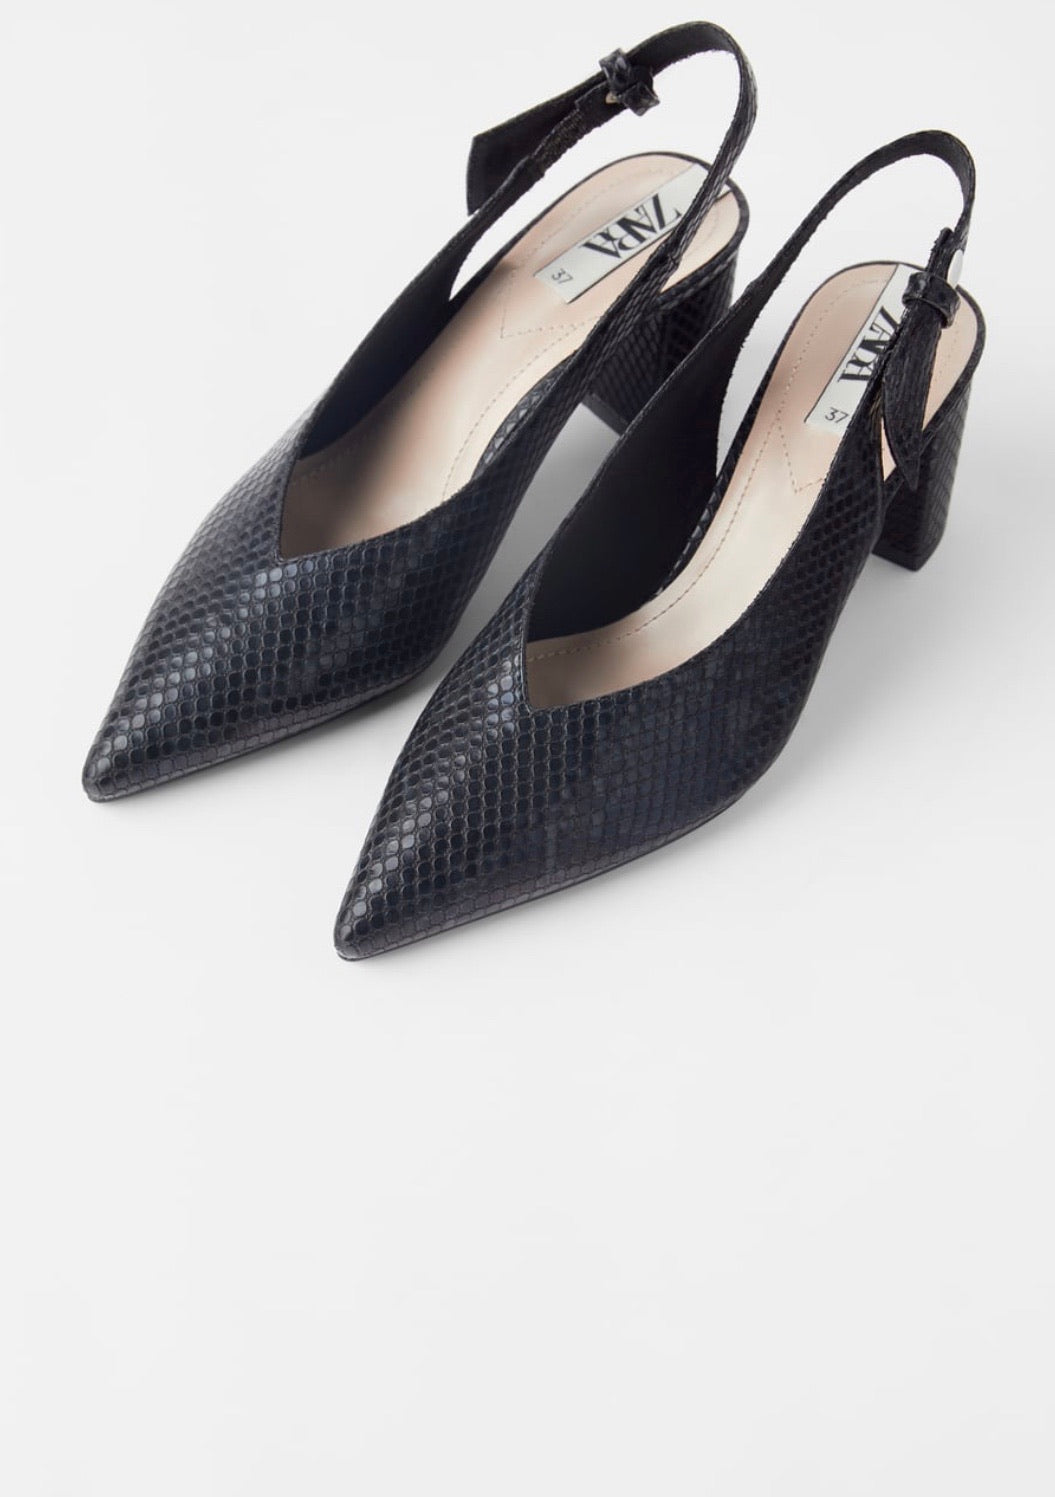 ZARA ANIMAL PRINT HEELED SLINGBACKS